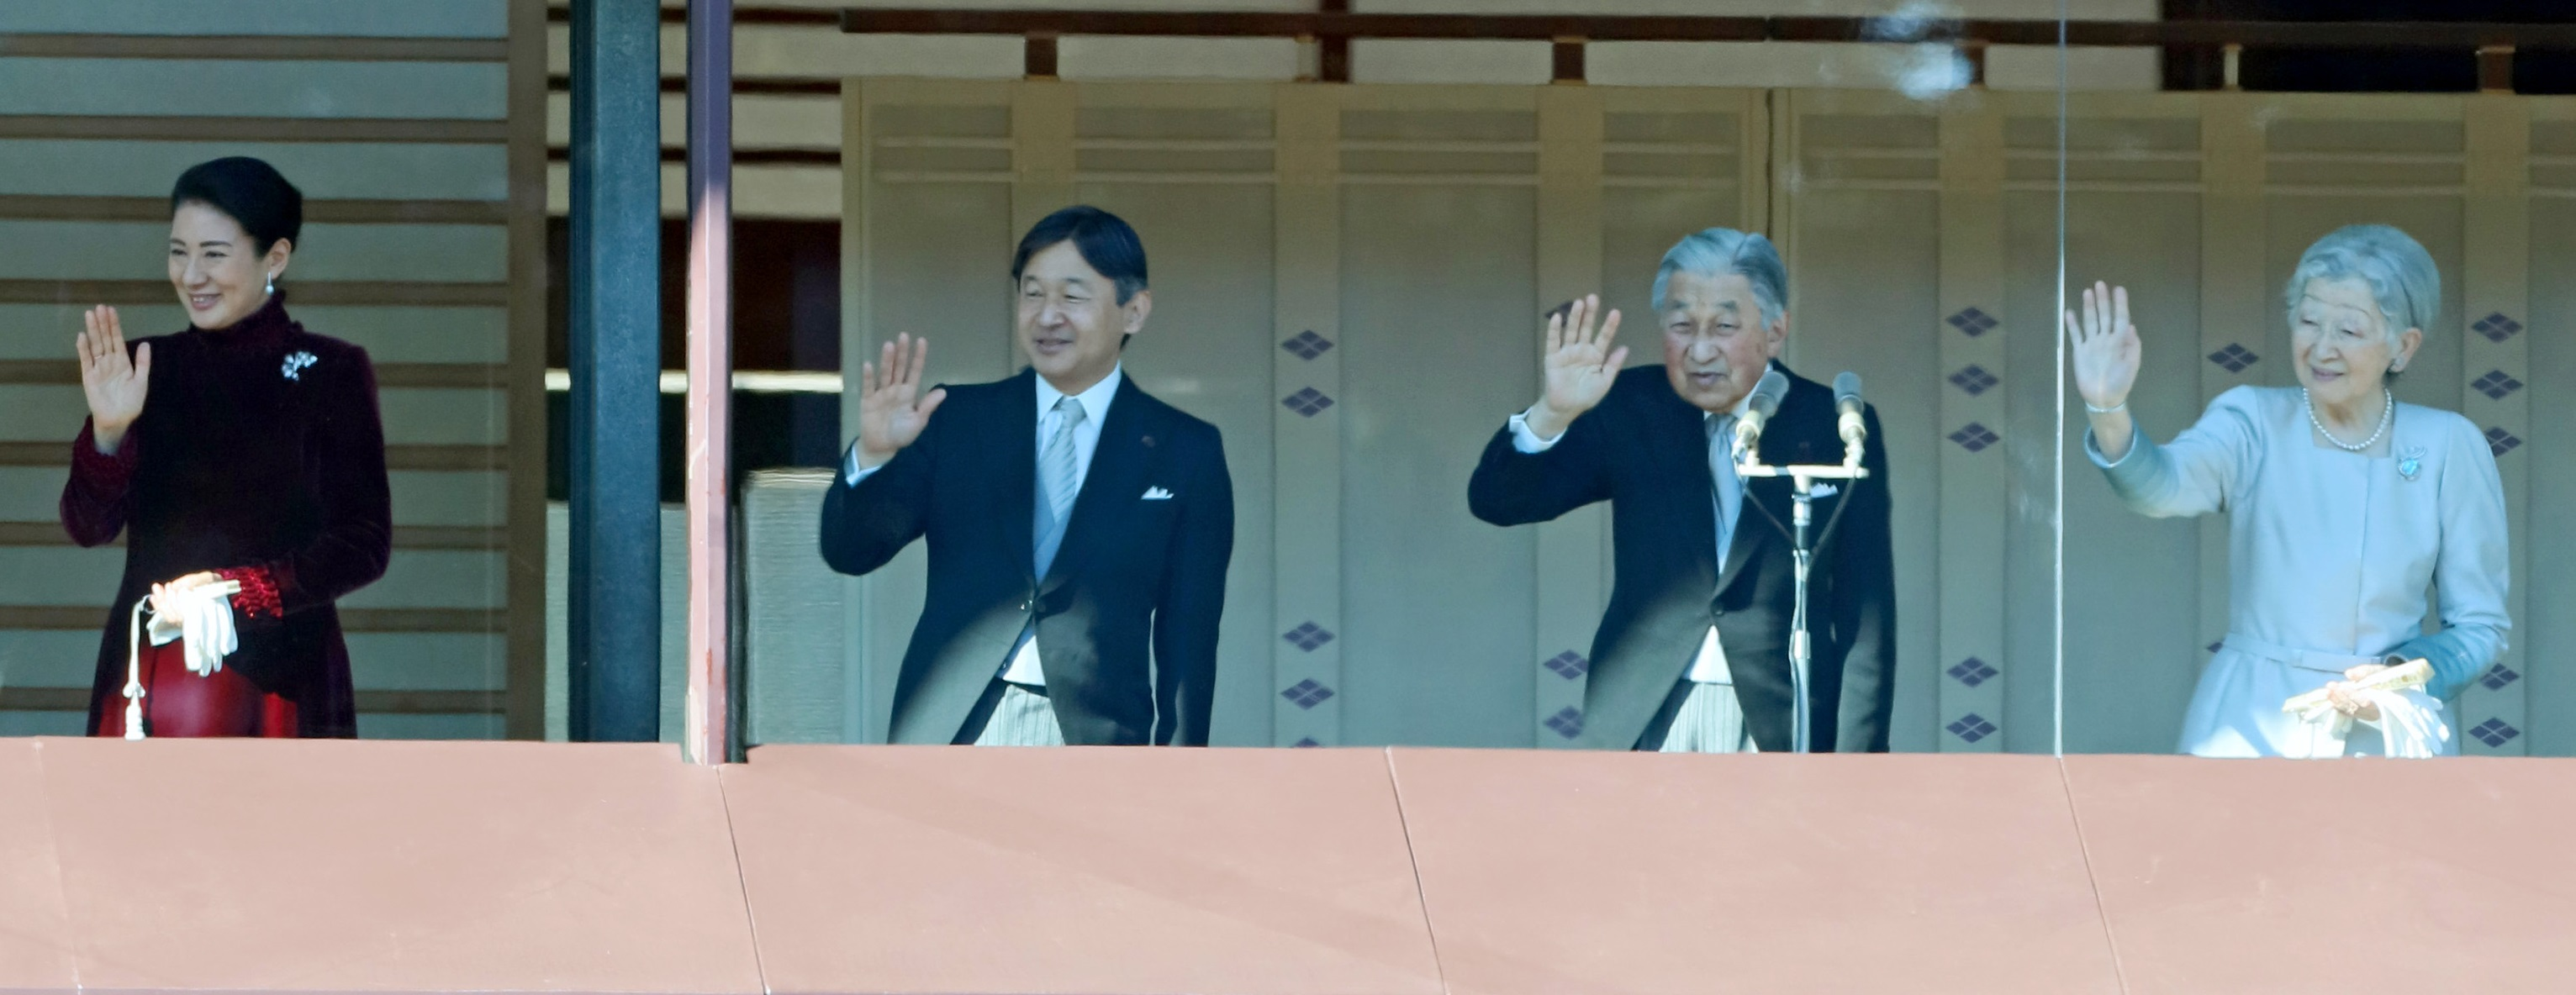 The Japanese Emperors Role in the 21st Century 003